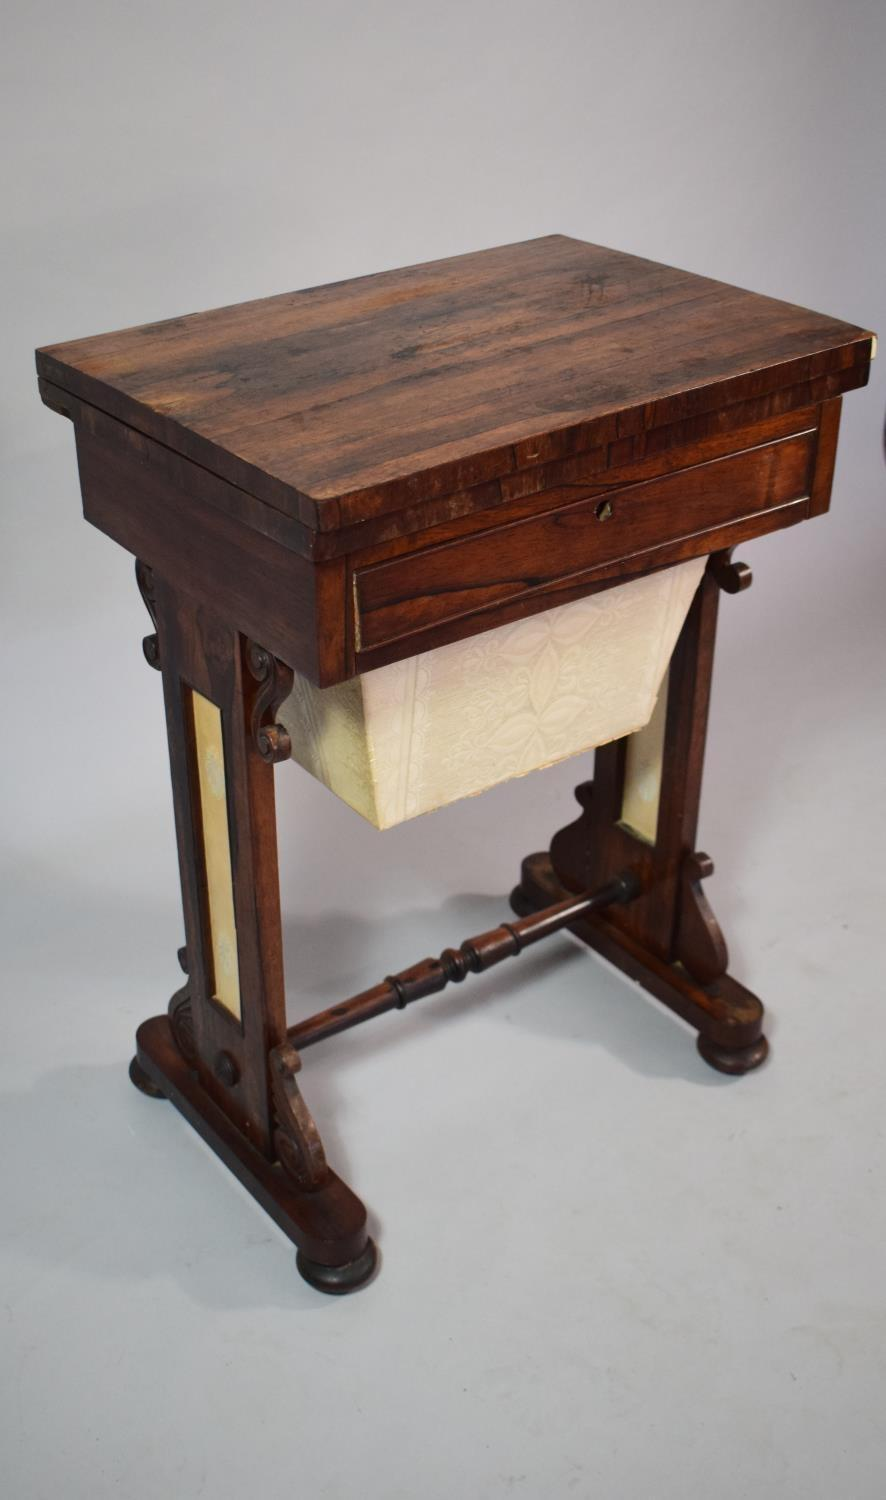 Lot 40 - A Regency Work Table having Tooled Leather Work Top, Drawer and Pull Out Well Under. 53x38x73